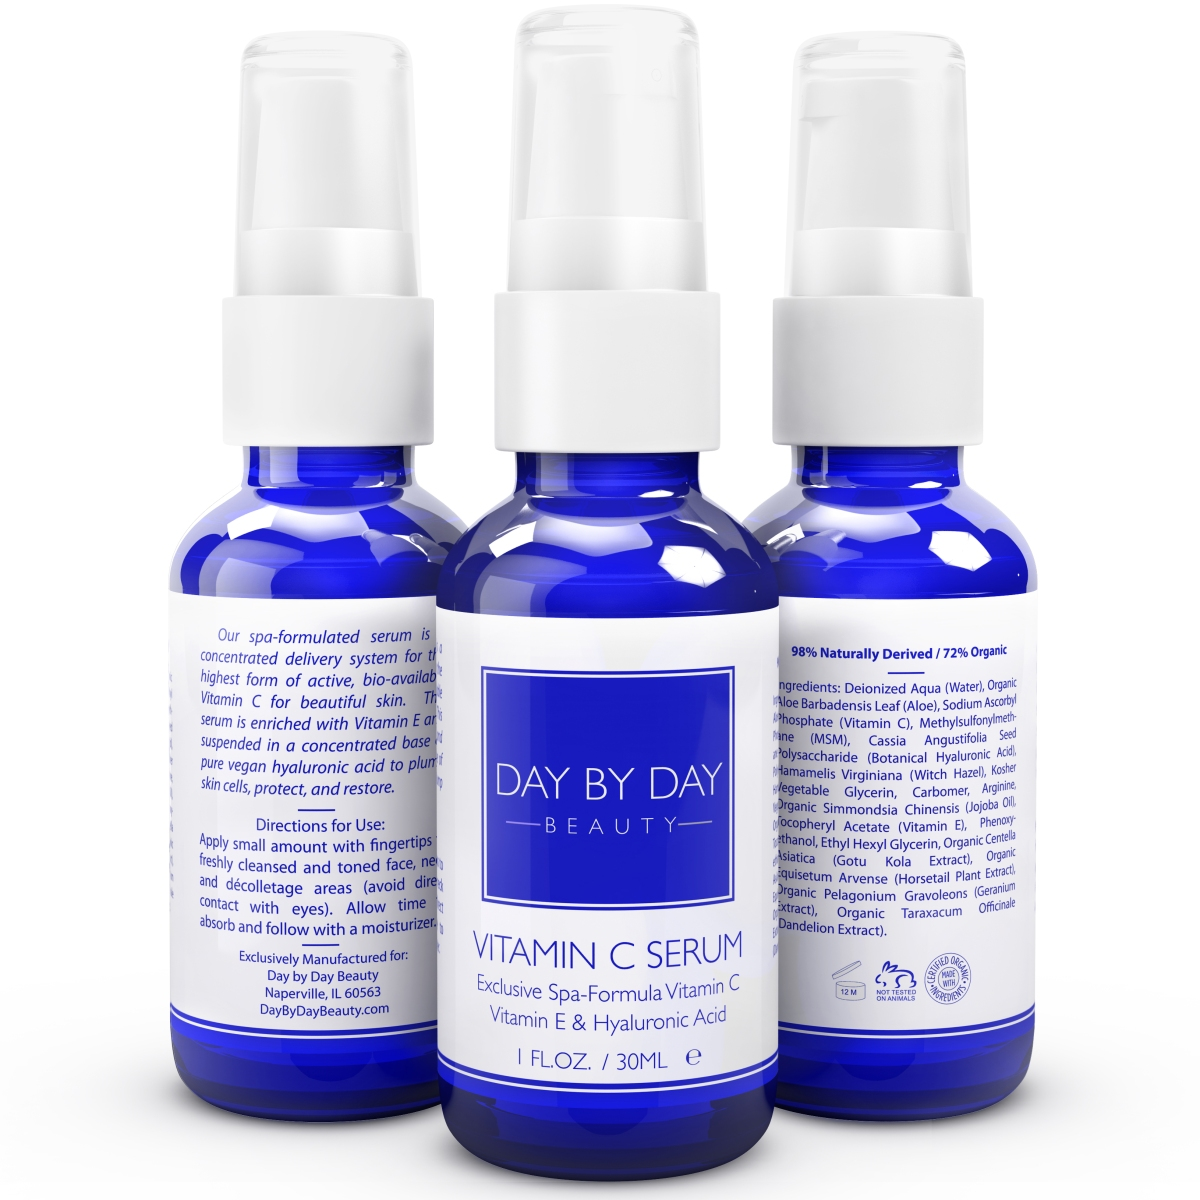 Day By Day Beauty Vitamin C SerumReview